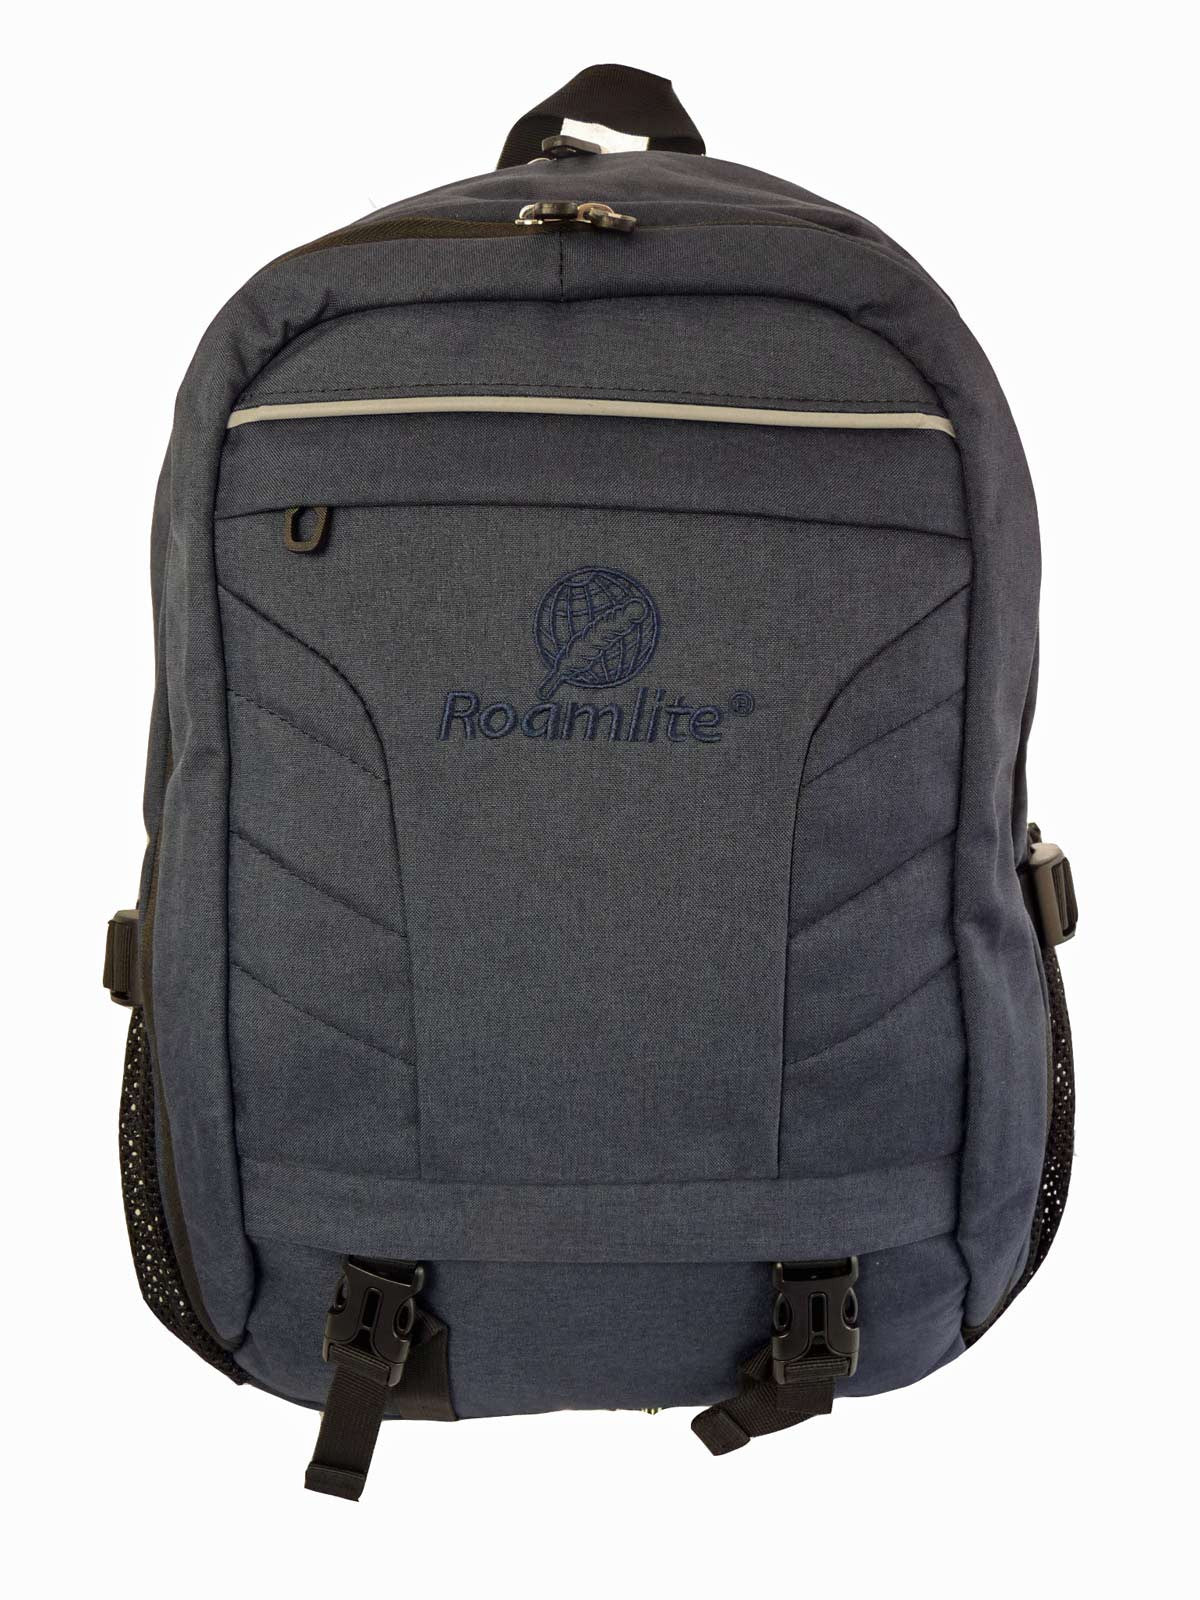 Laptop Macbook Backpack Rucksack Bag RL45N Front View